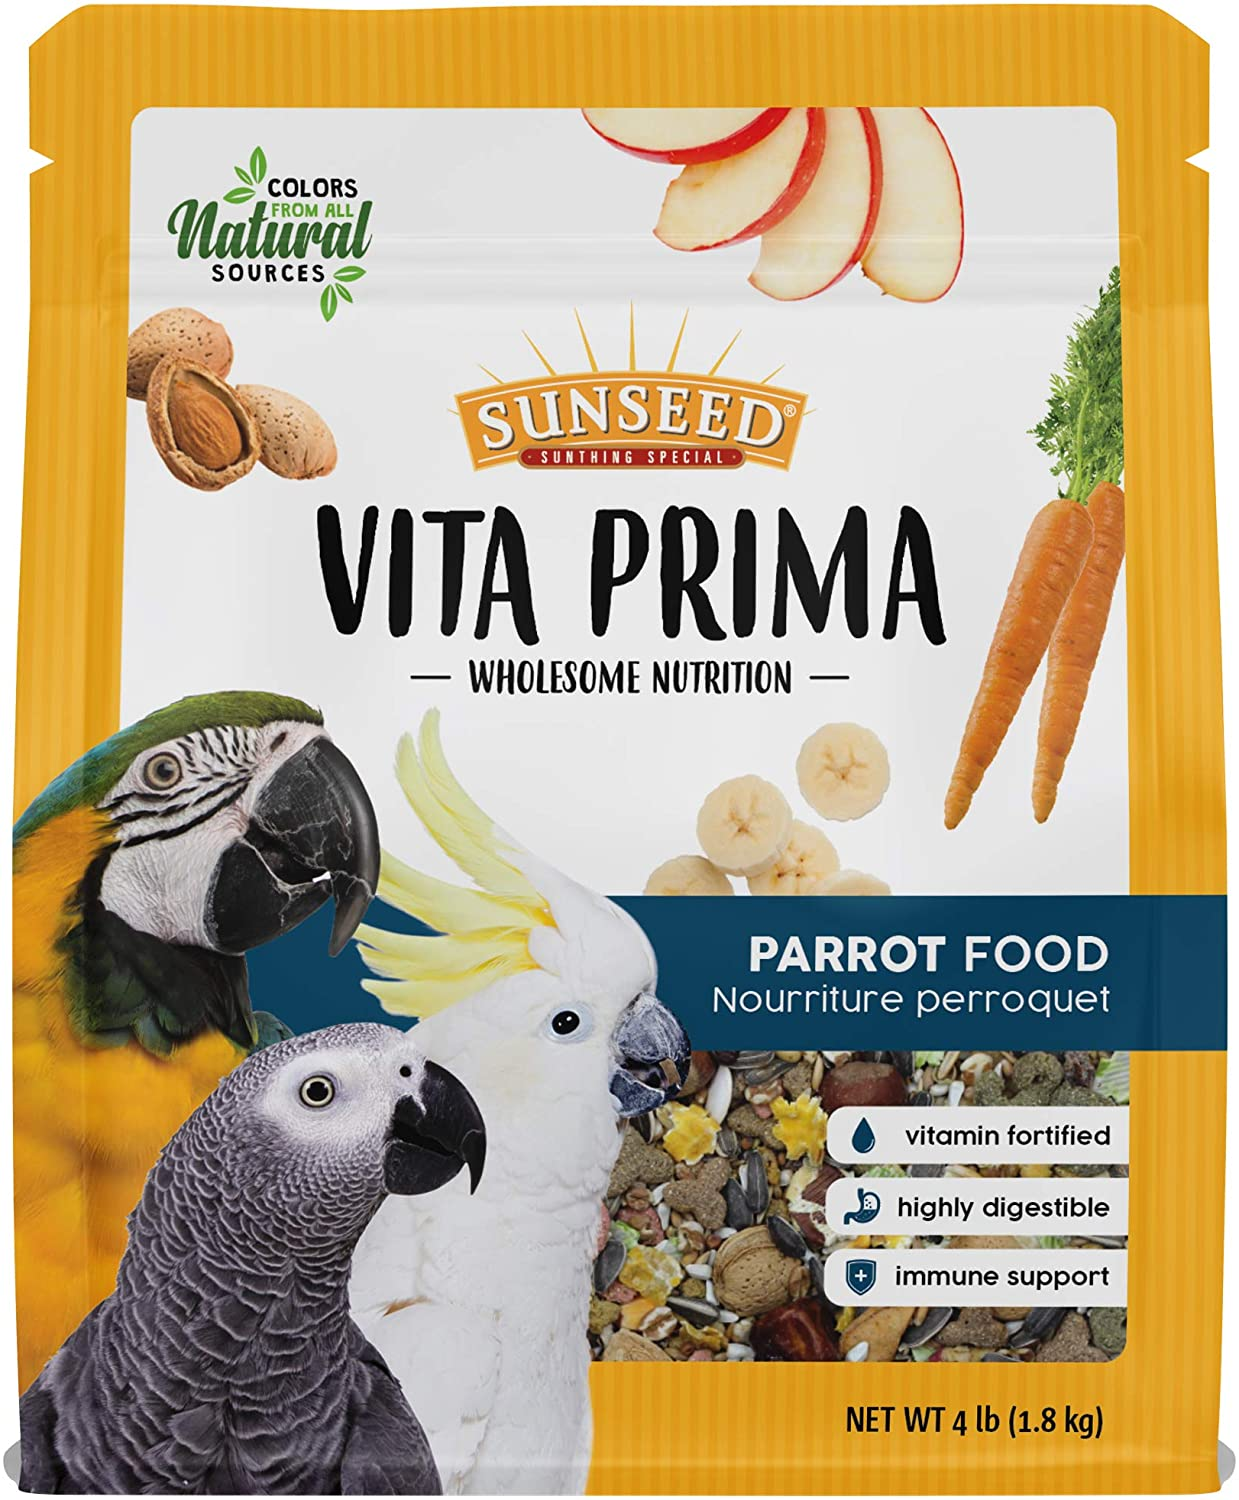 Sunseed Vita Prima Wholesome Nutrition Parrot Food, 4 LBS